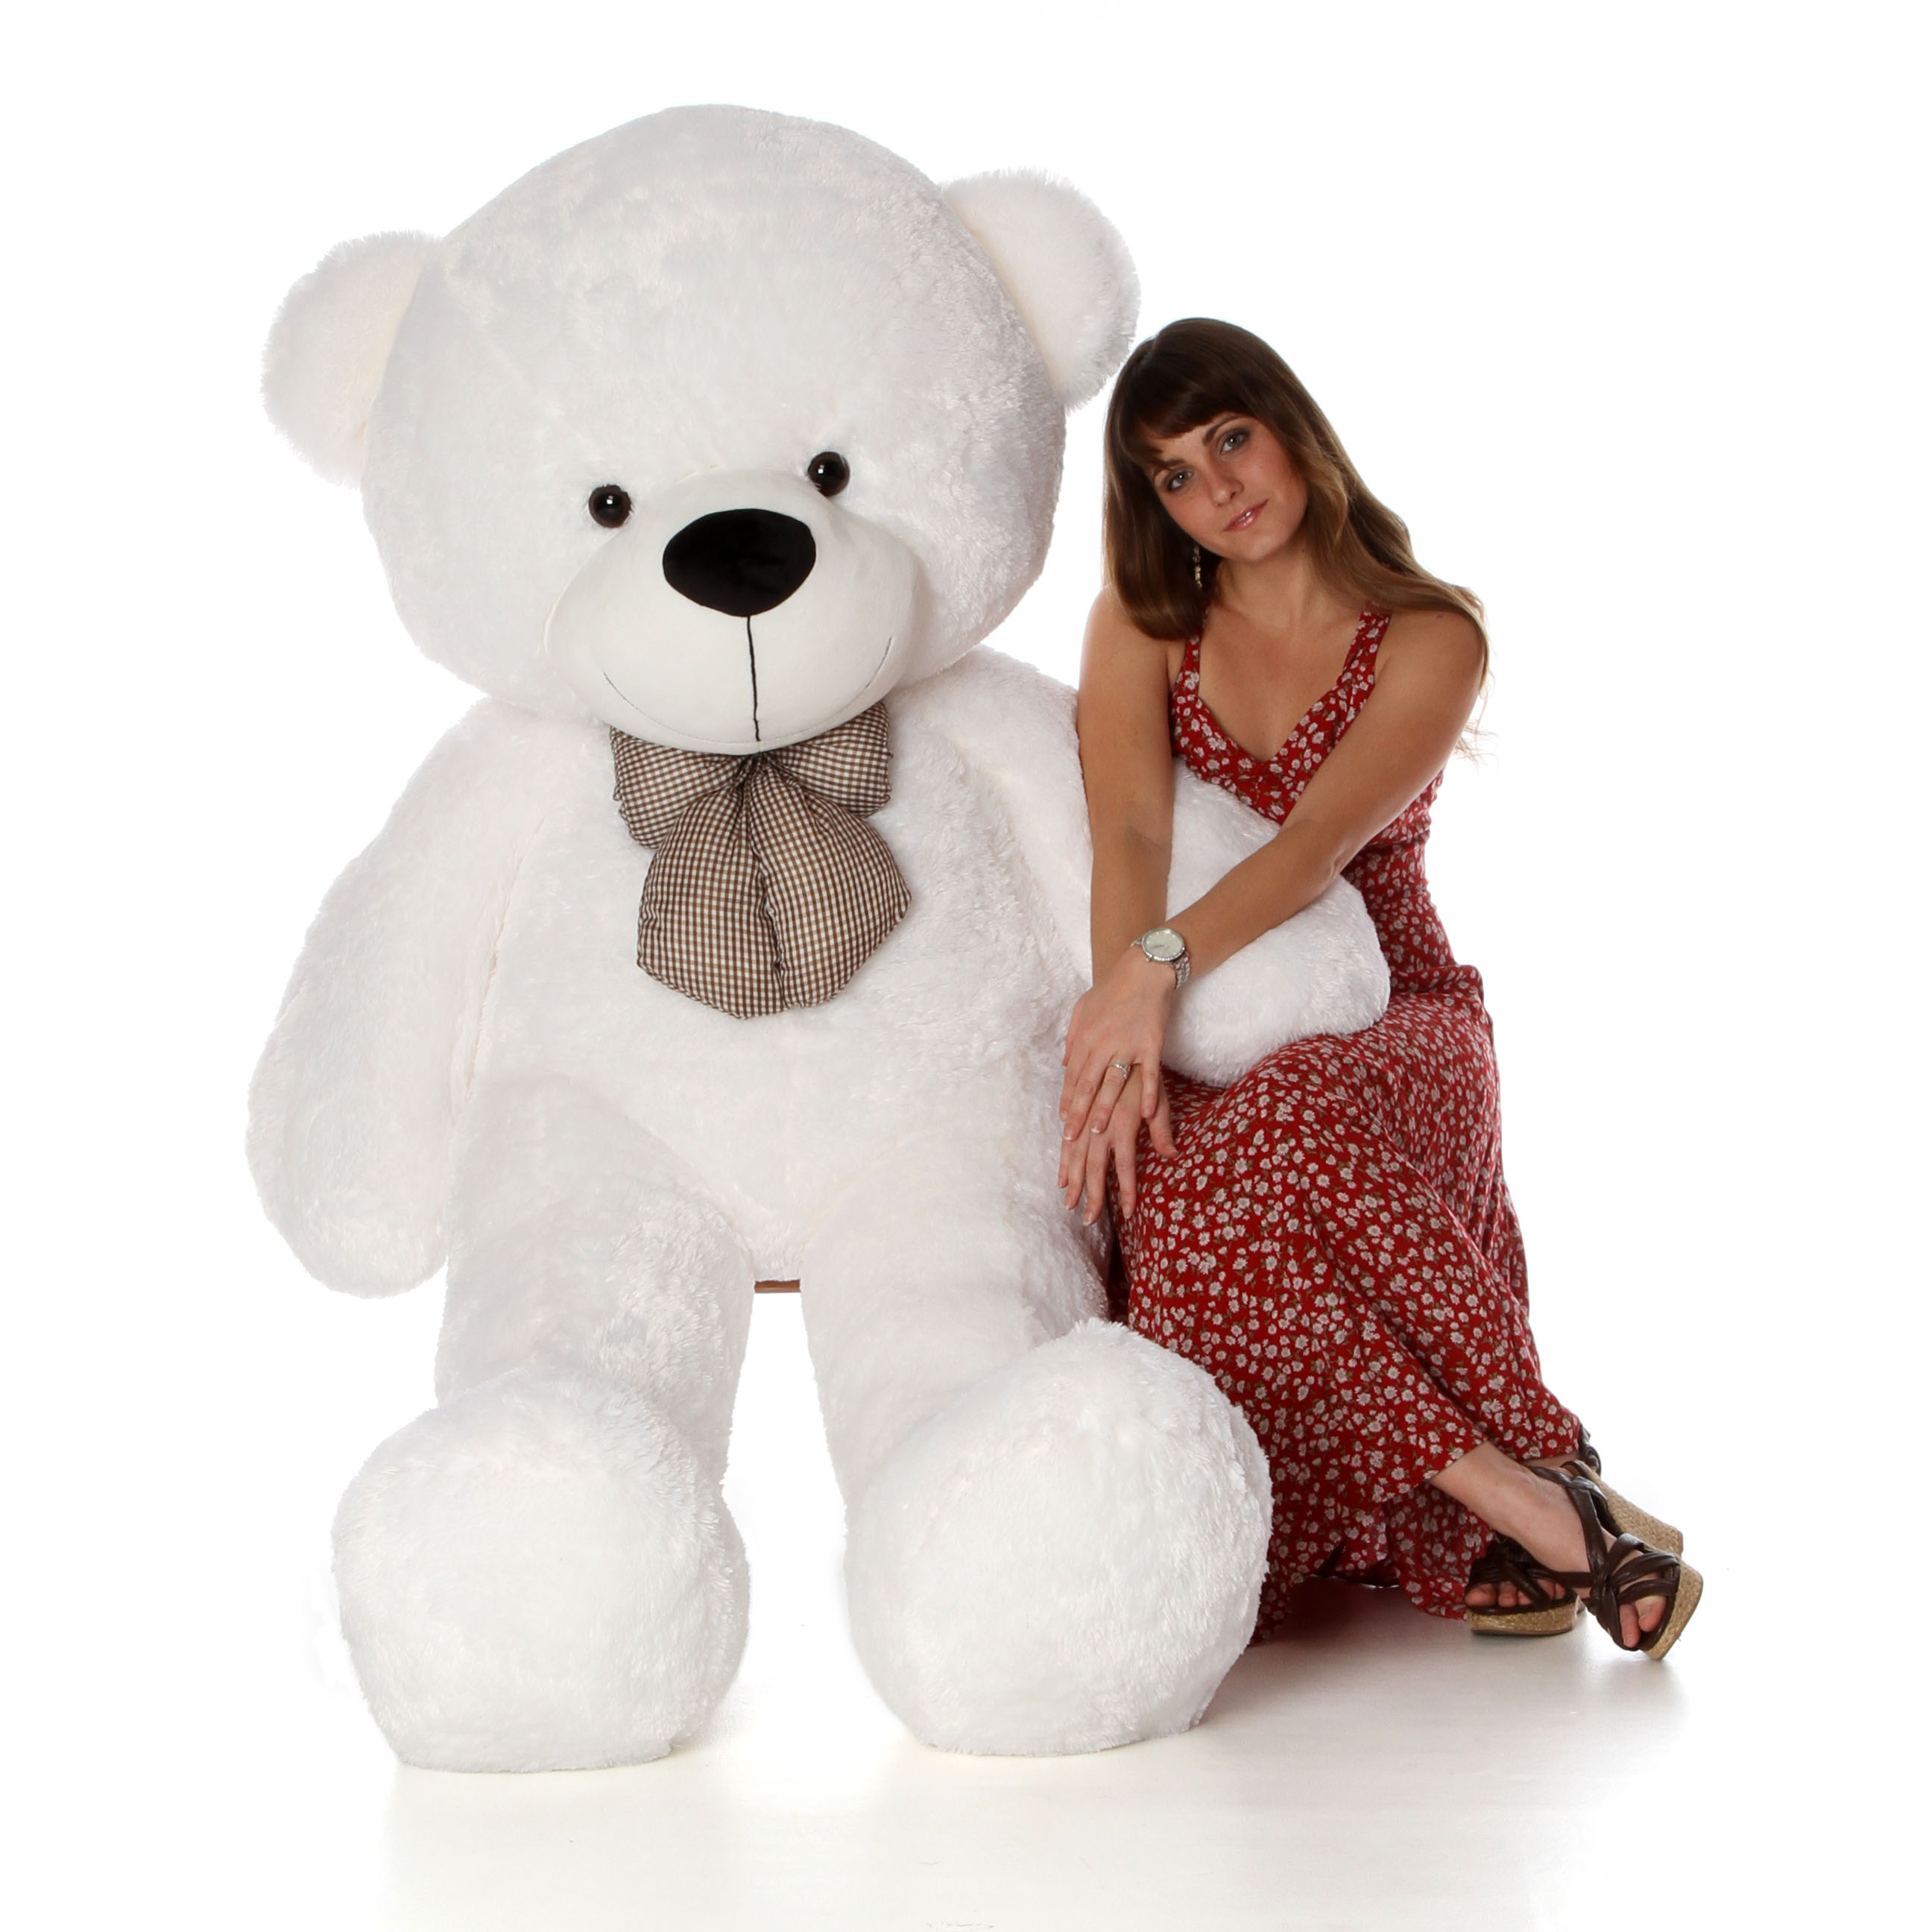 6ft-best-selling-life-size-teddy-bear-coco-cuddles-giant-white-teddy-bear.jpg